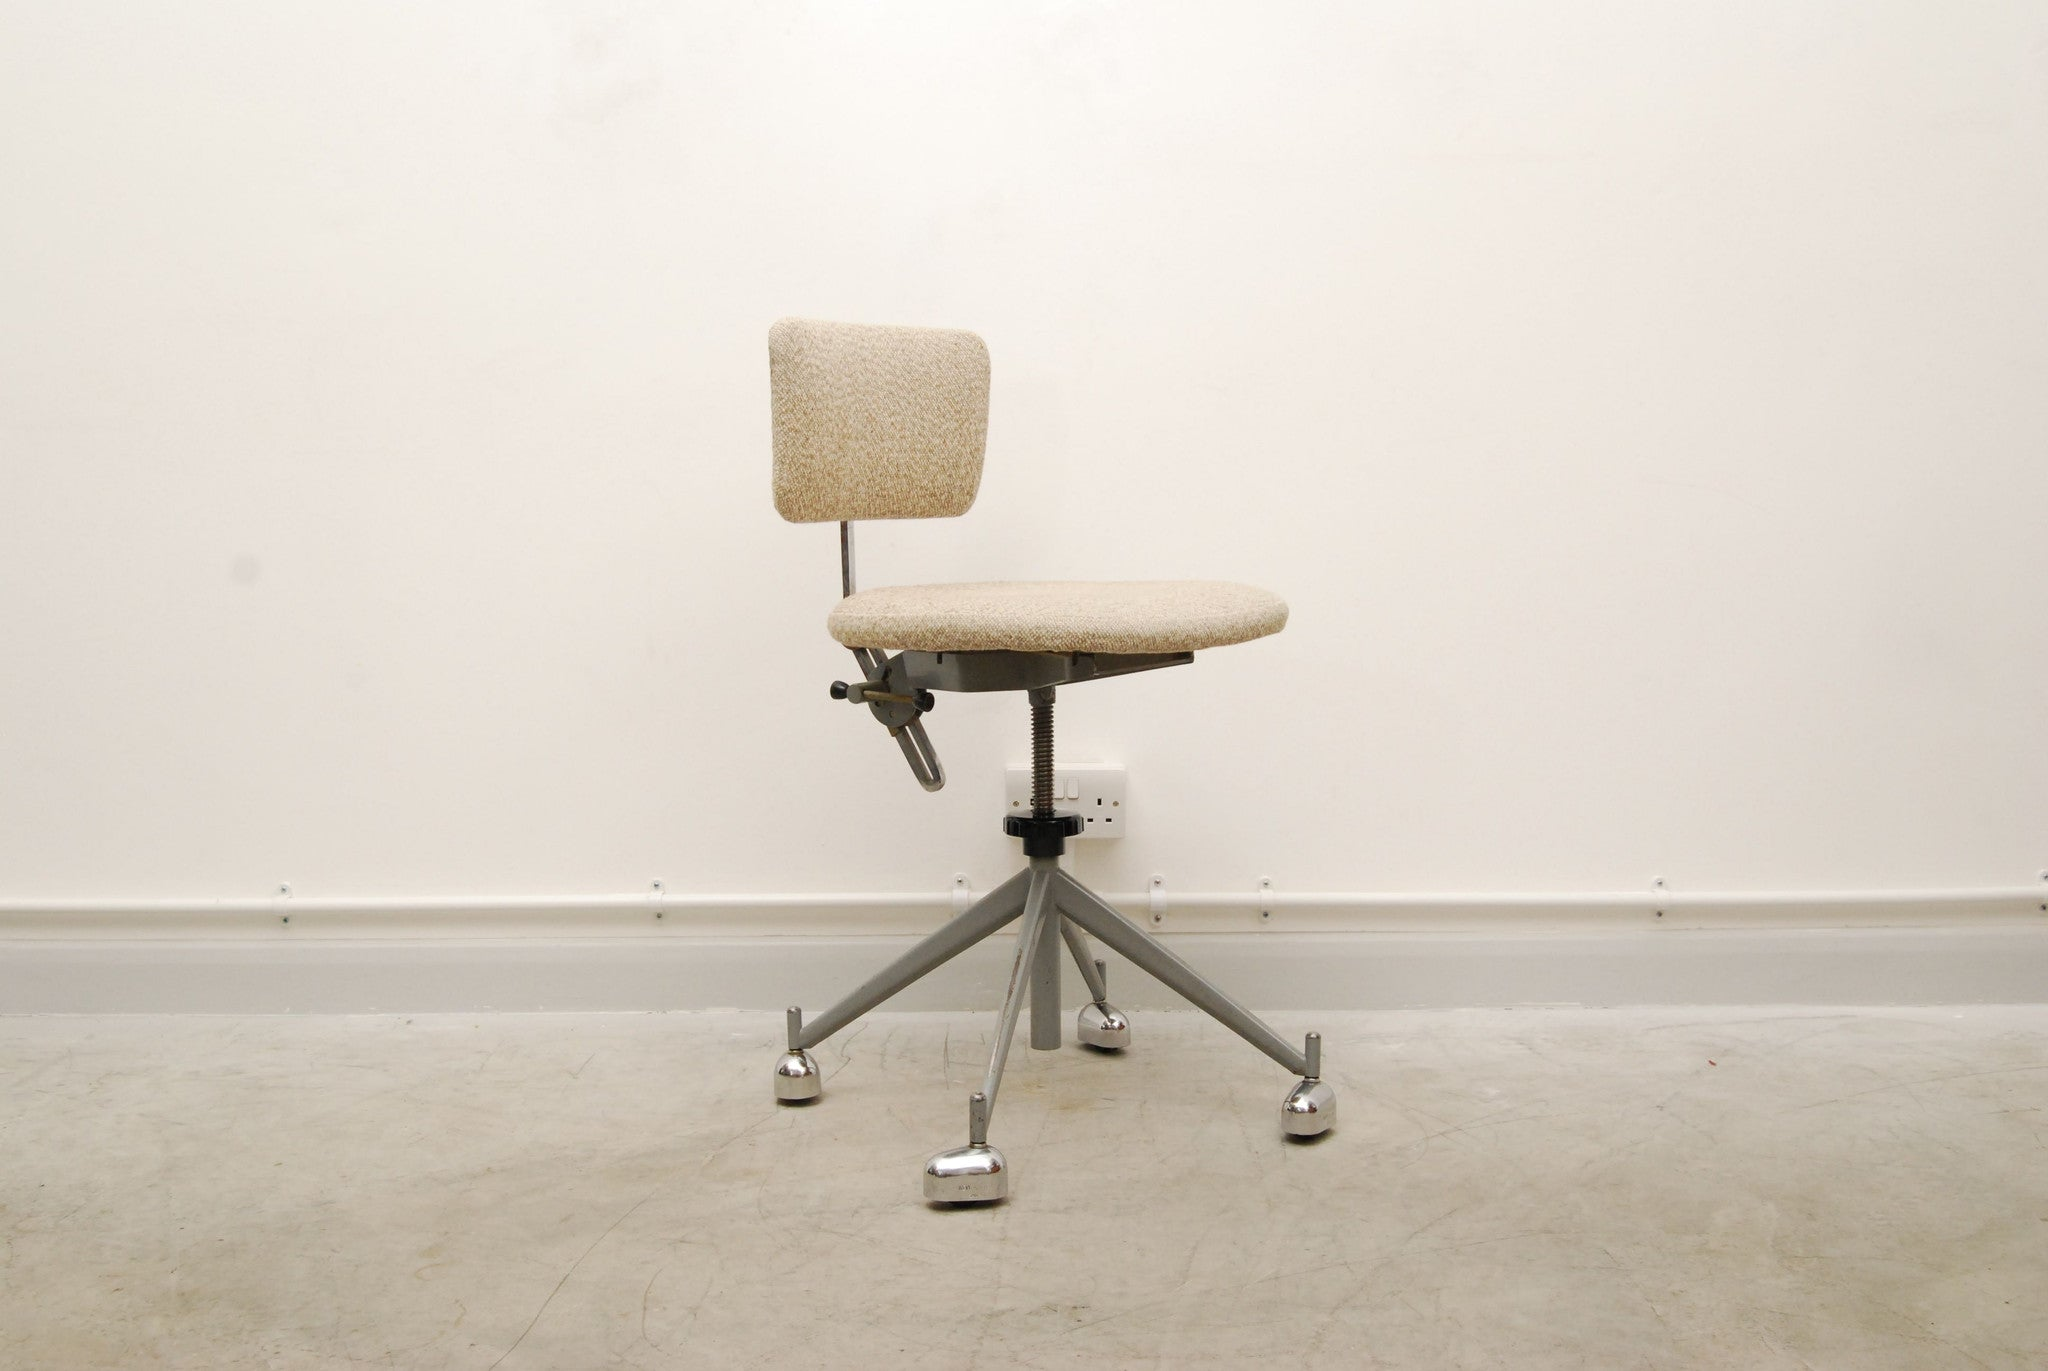 Desk/work chair by KEVI